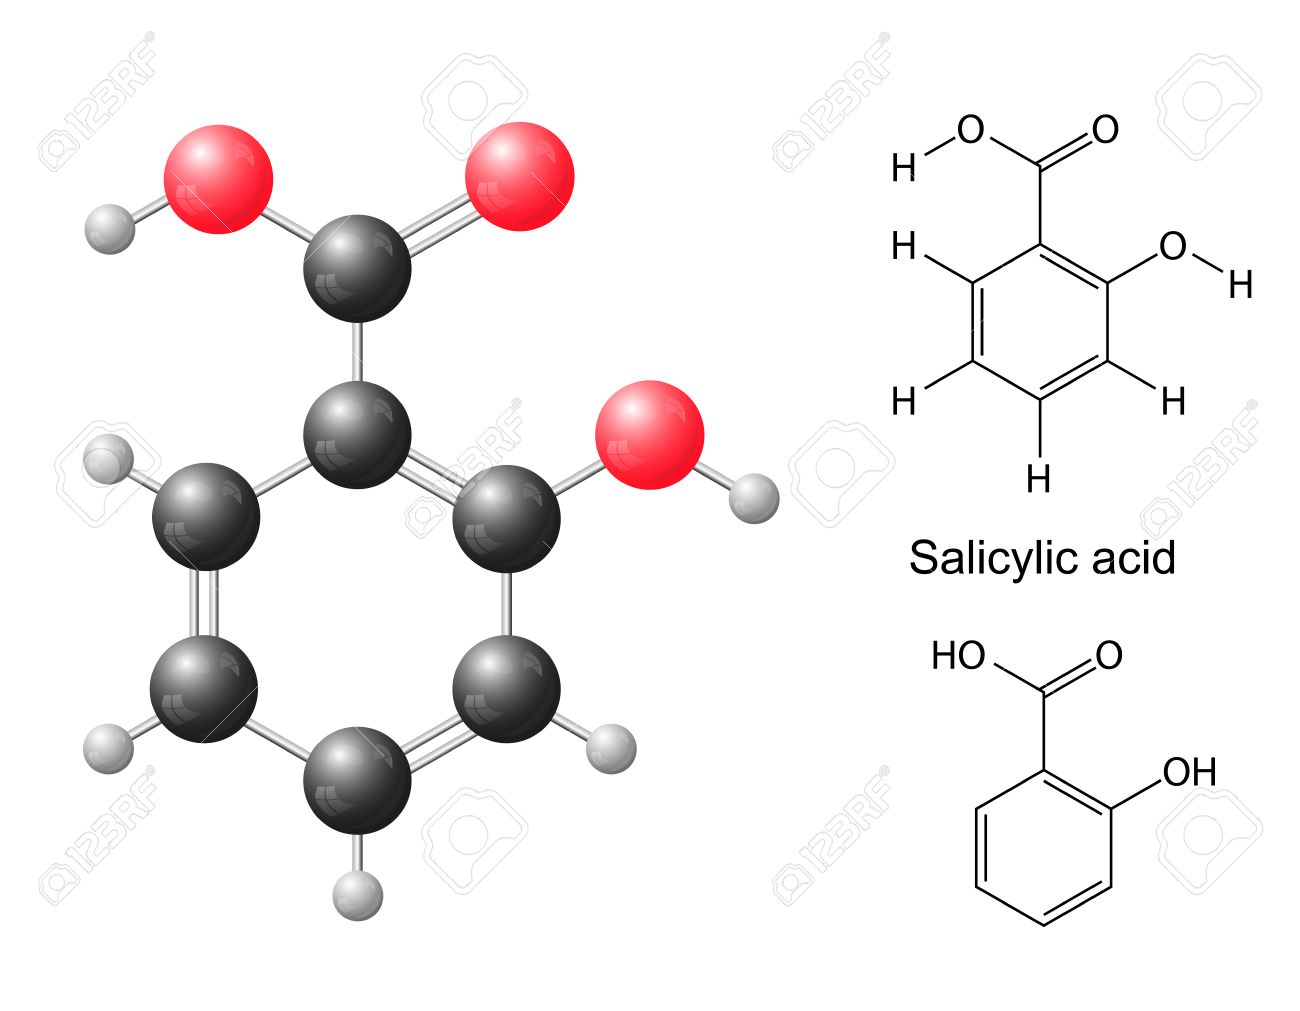 Structural chemical formulas and model of salicylic acid molecule, 2d 3d Illustration, isolated on white background, balls sticks, skeletal, vector, eps 10 - 30792276